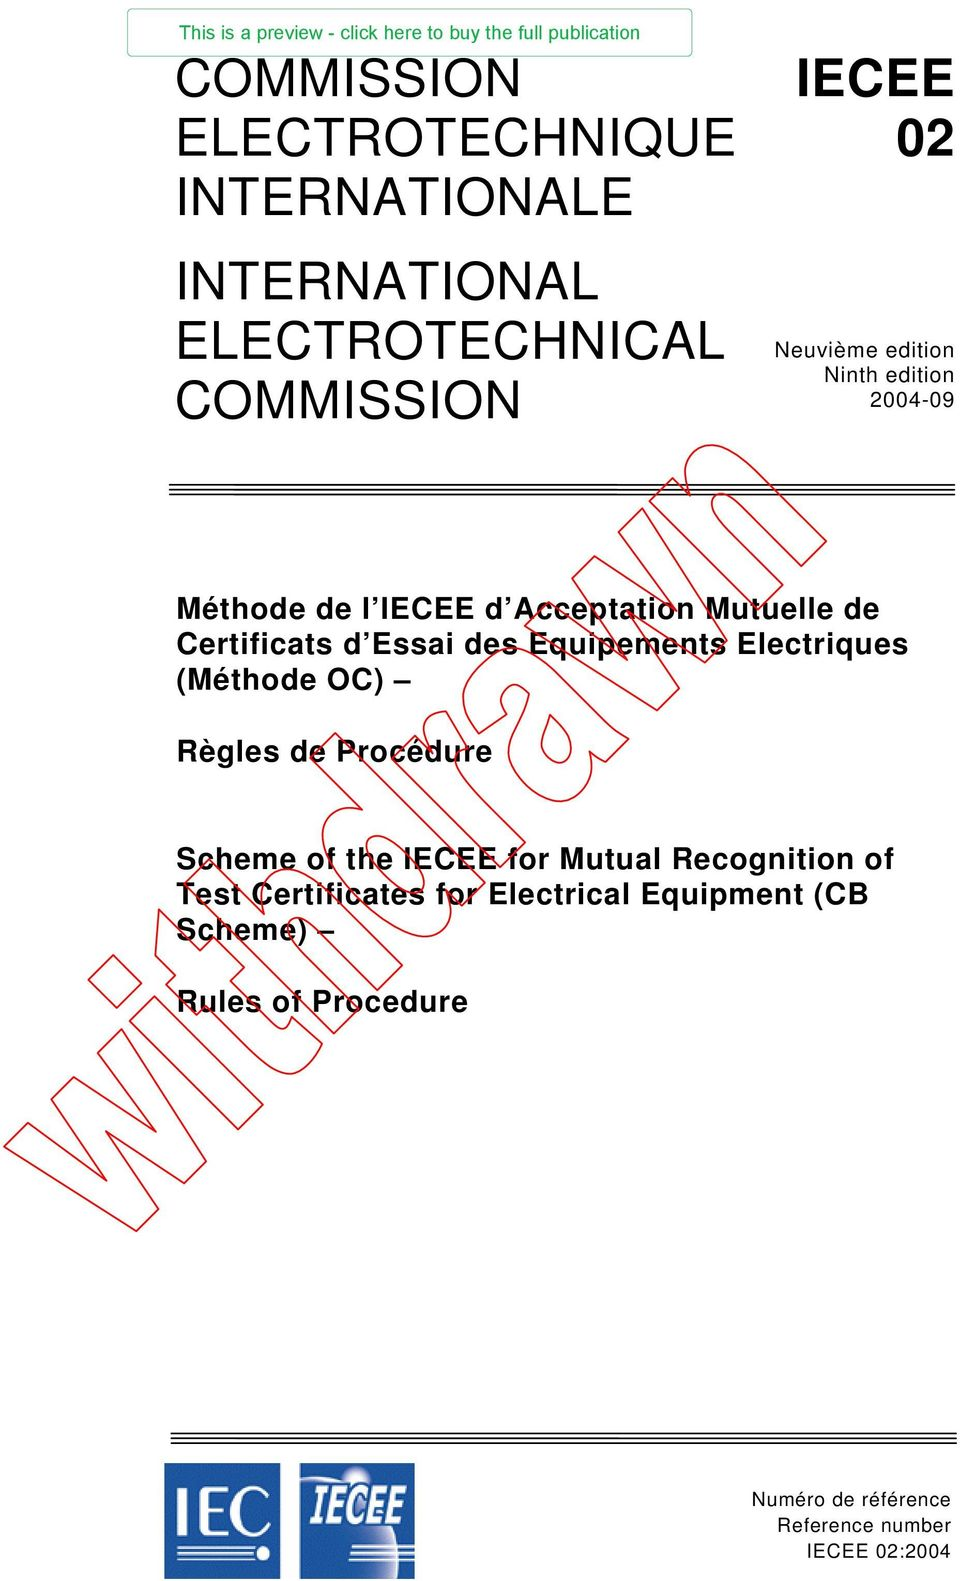 Equipements Electriques (Méthode OC) Règles de Procédure Scheme of the IECEE for Mutual Recognition of Test